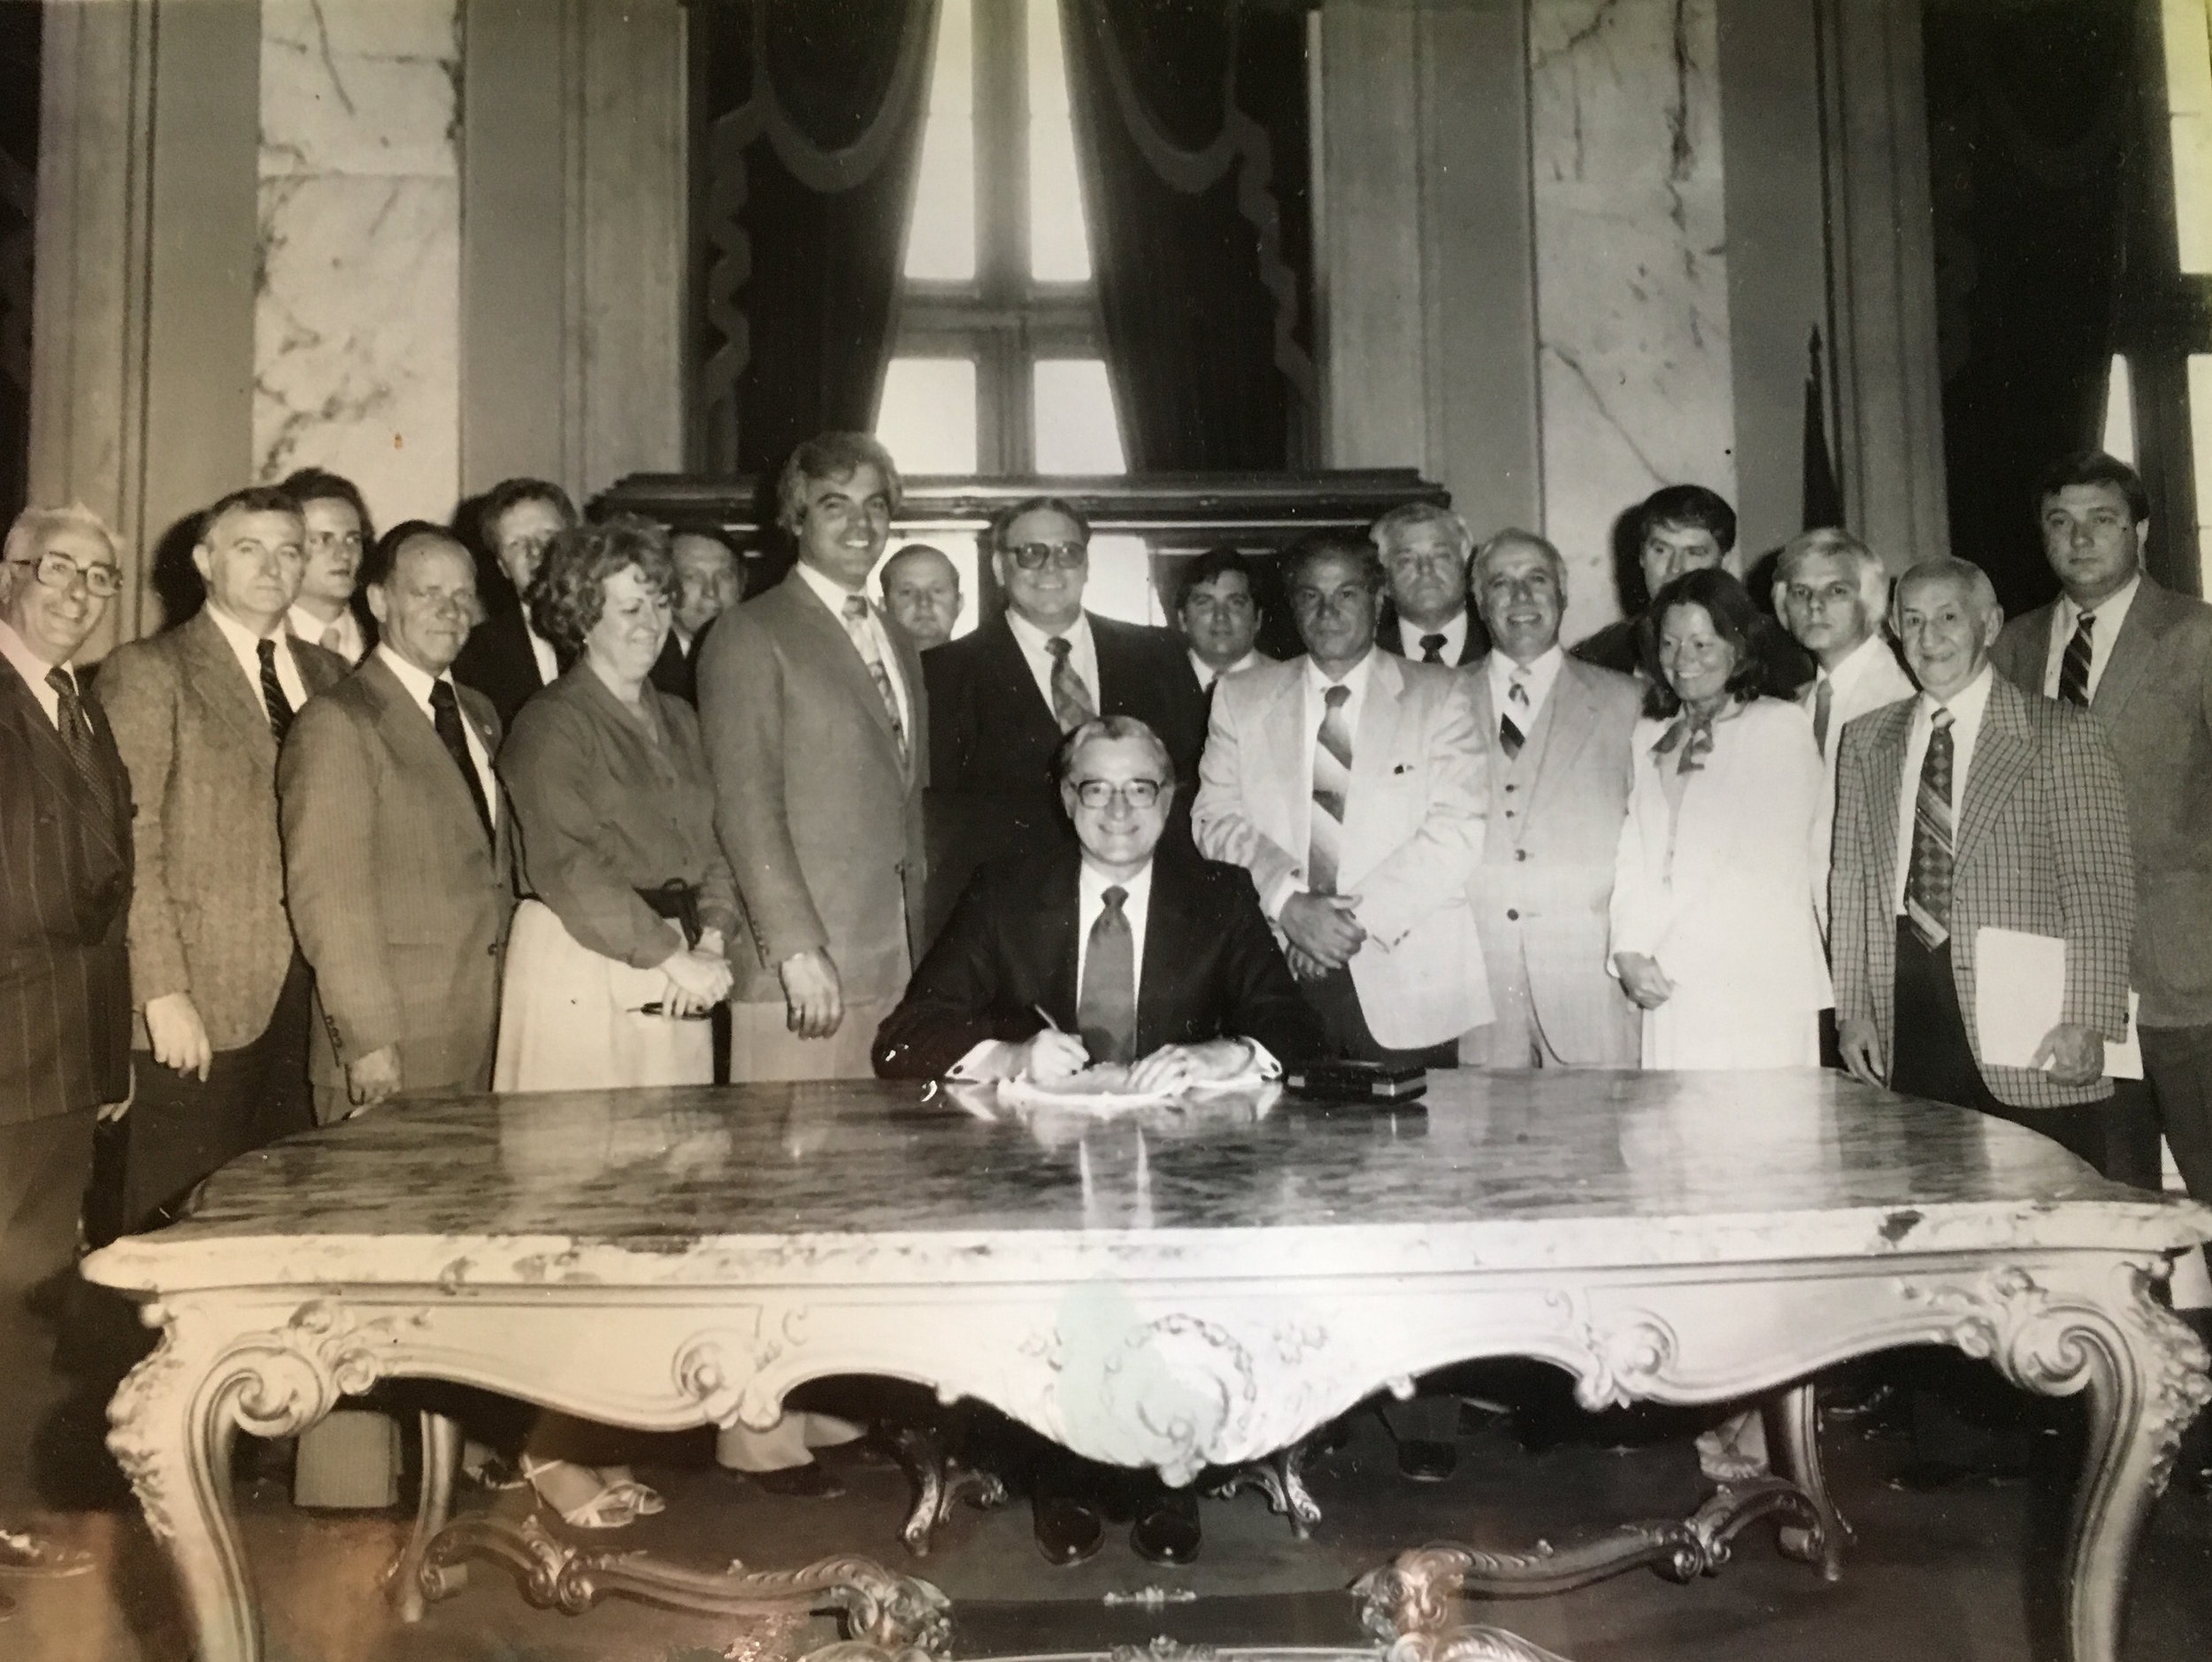 Gloria Kennedy Fleck, fourth from right, poses with other state senators.  Courtesy of Gloria Kennedy Fleck.